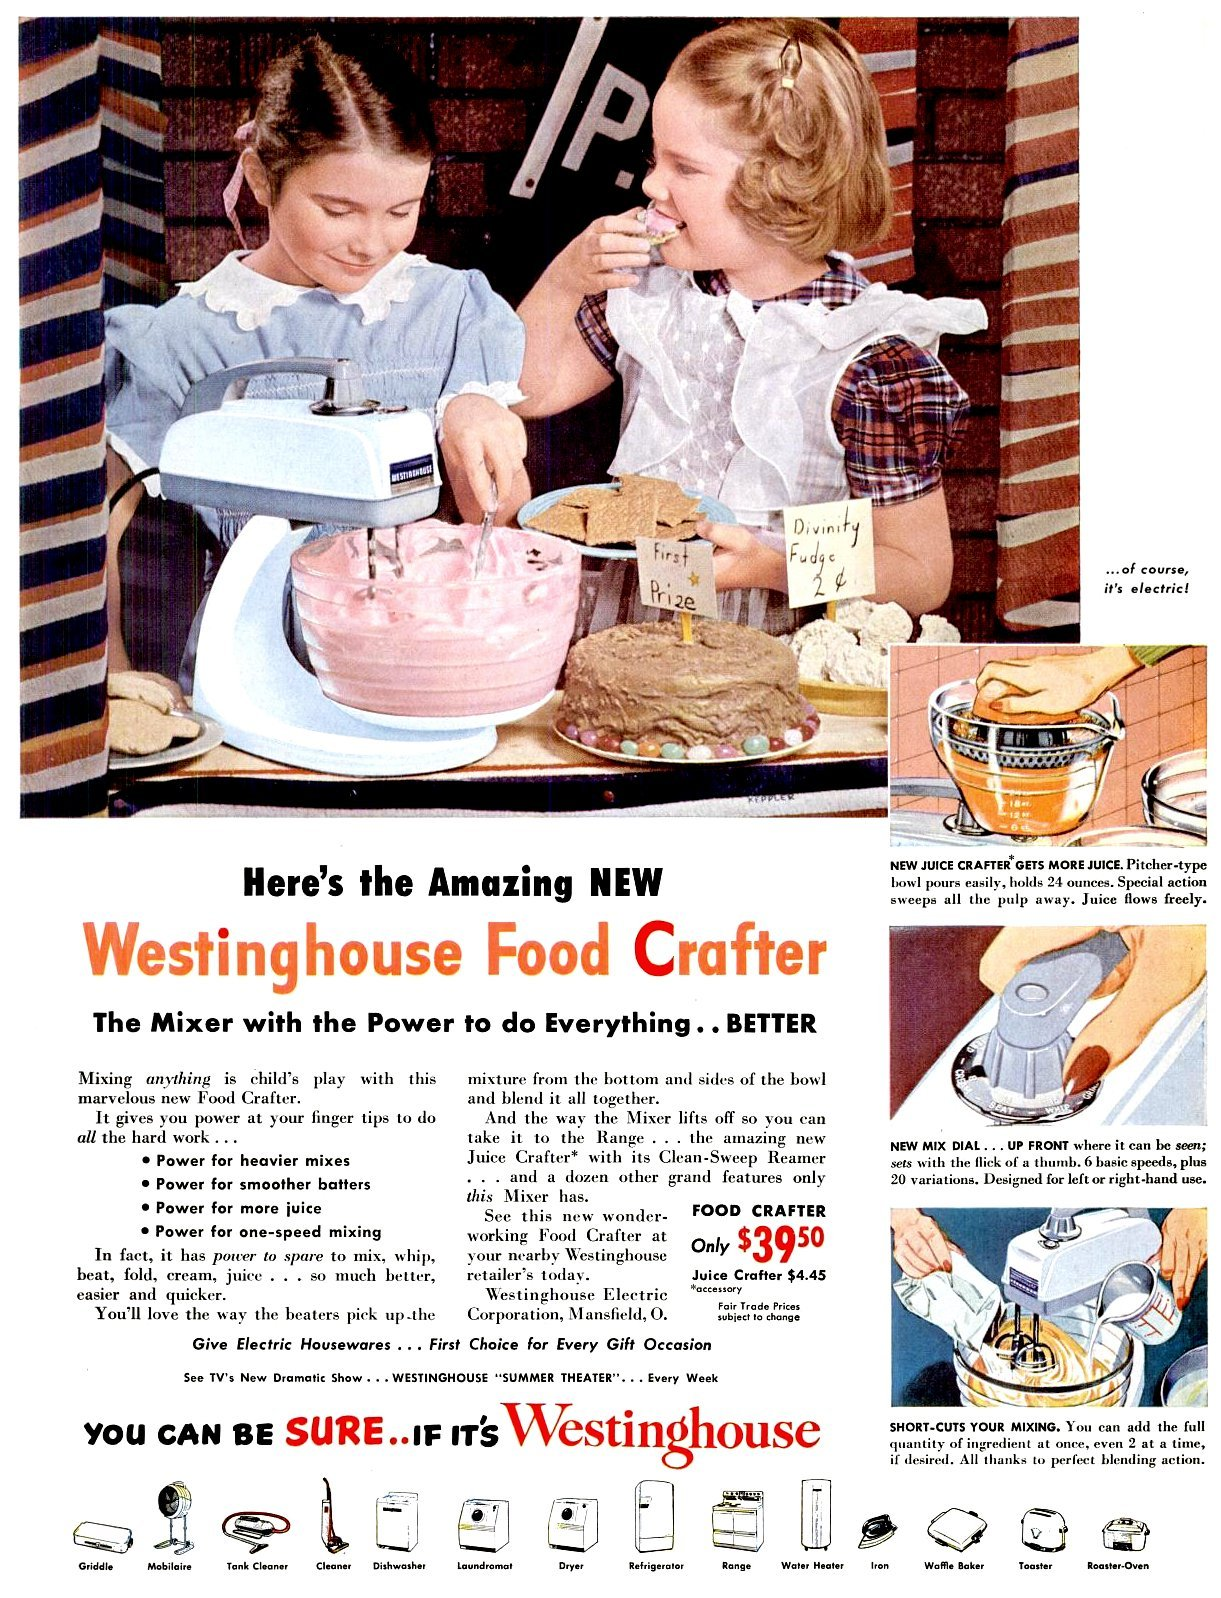 Westinghouse Food Crafter stand mixer (1951)